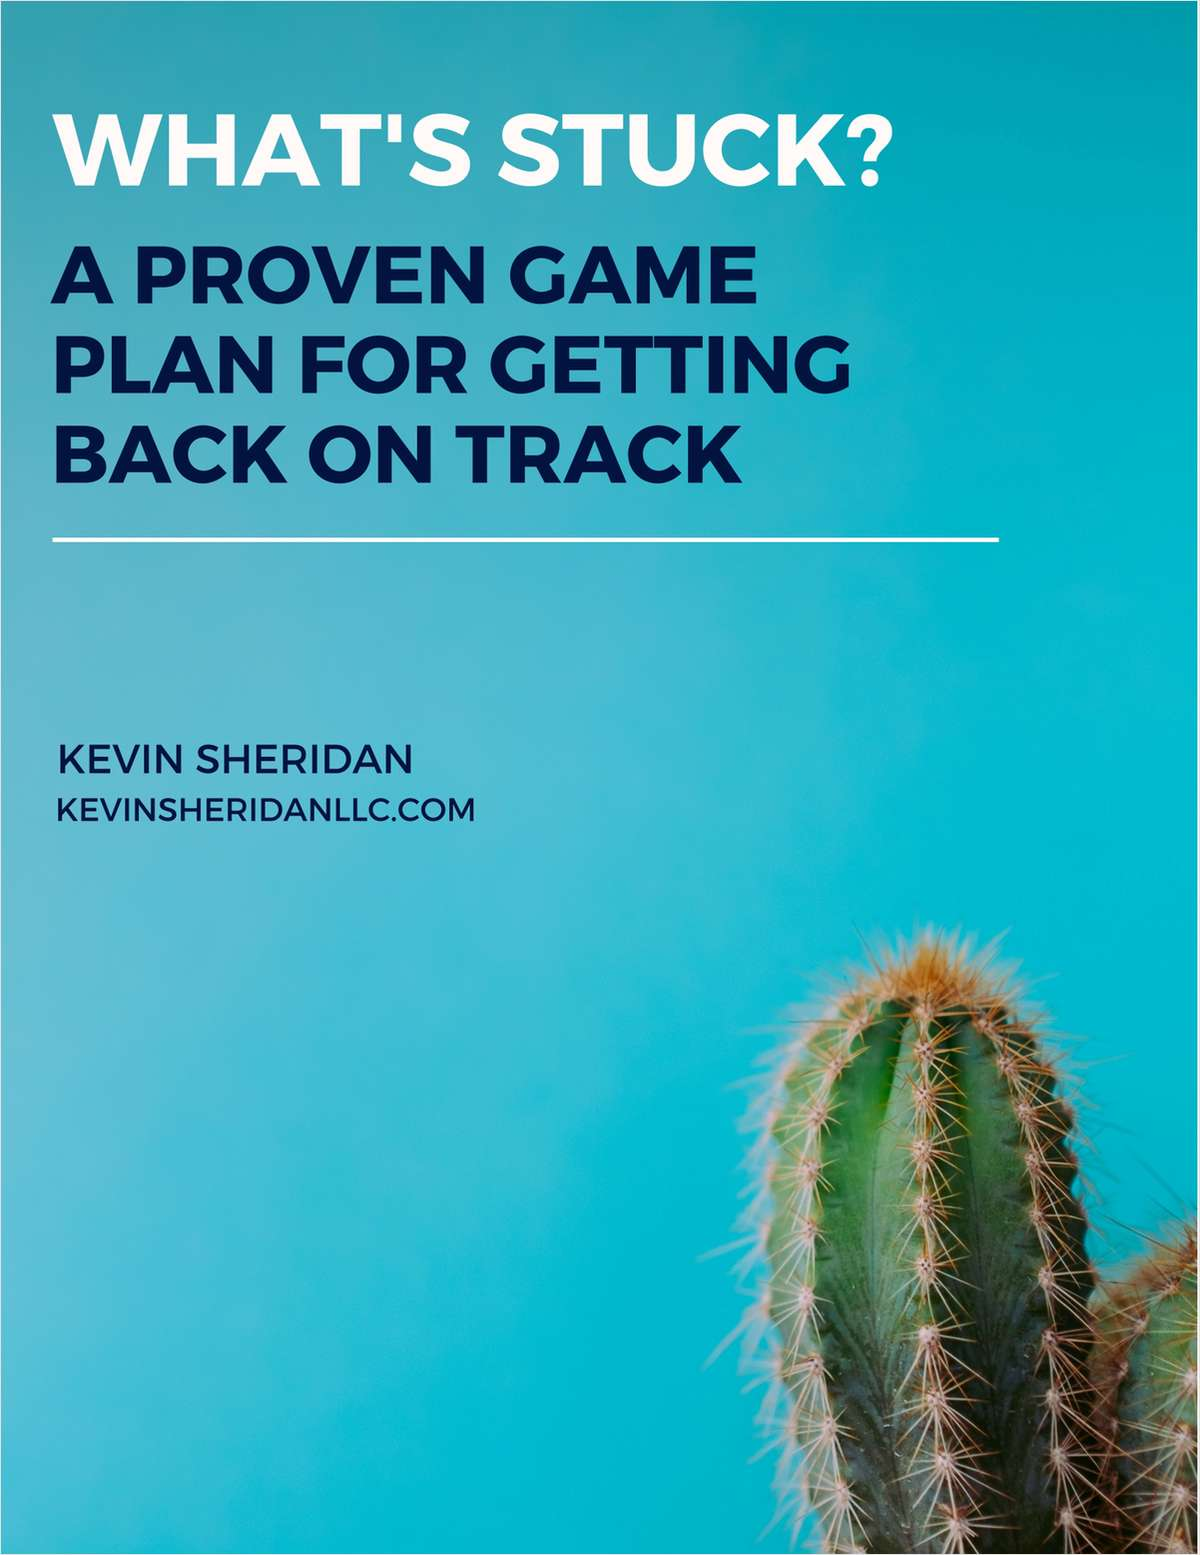 What's Stuck? A Proven Game Plan for Getting Back on Track